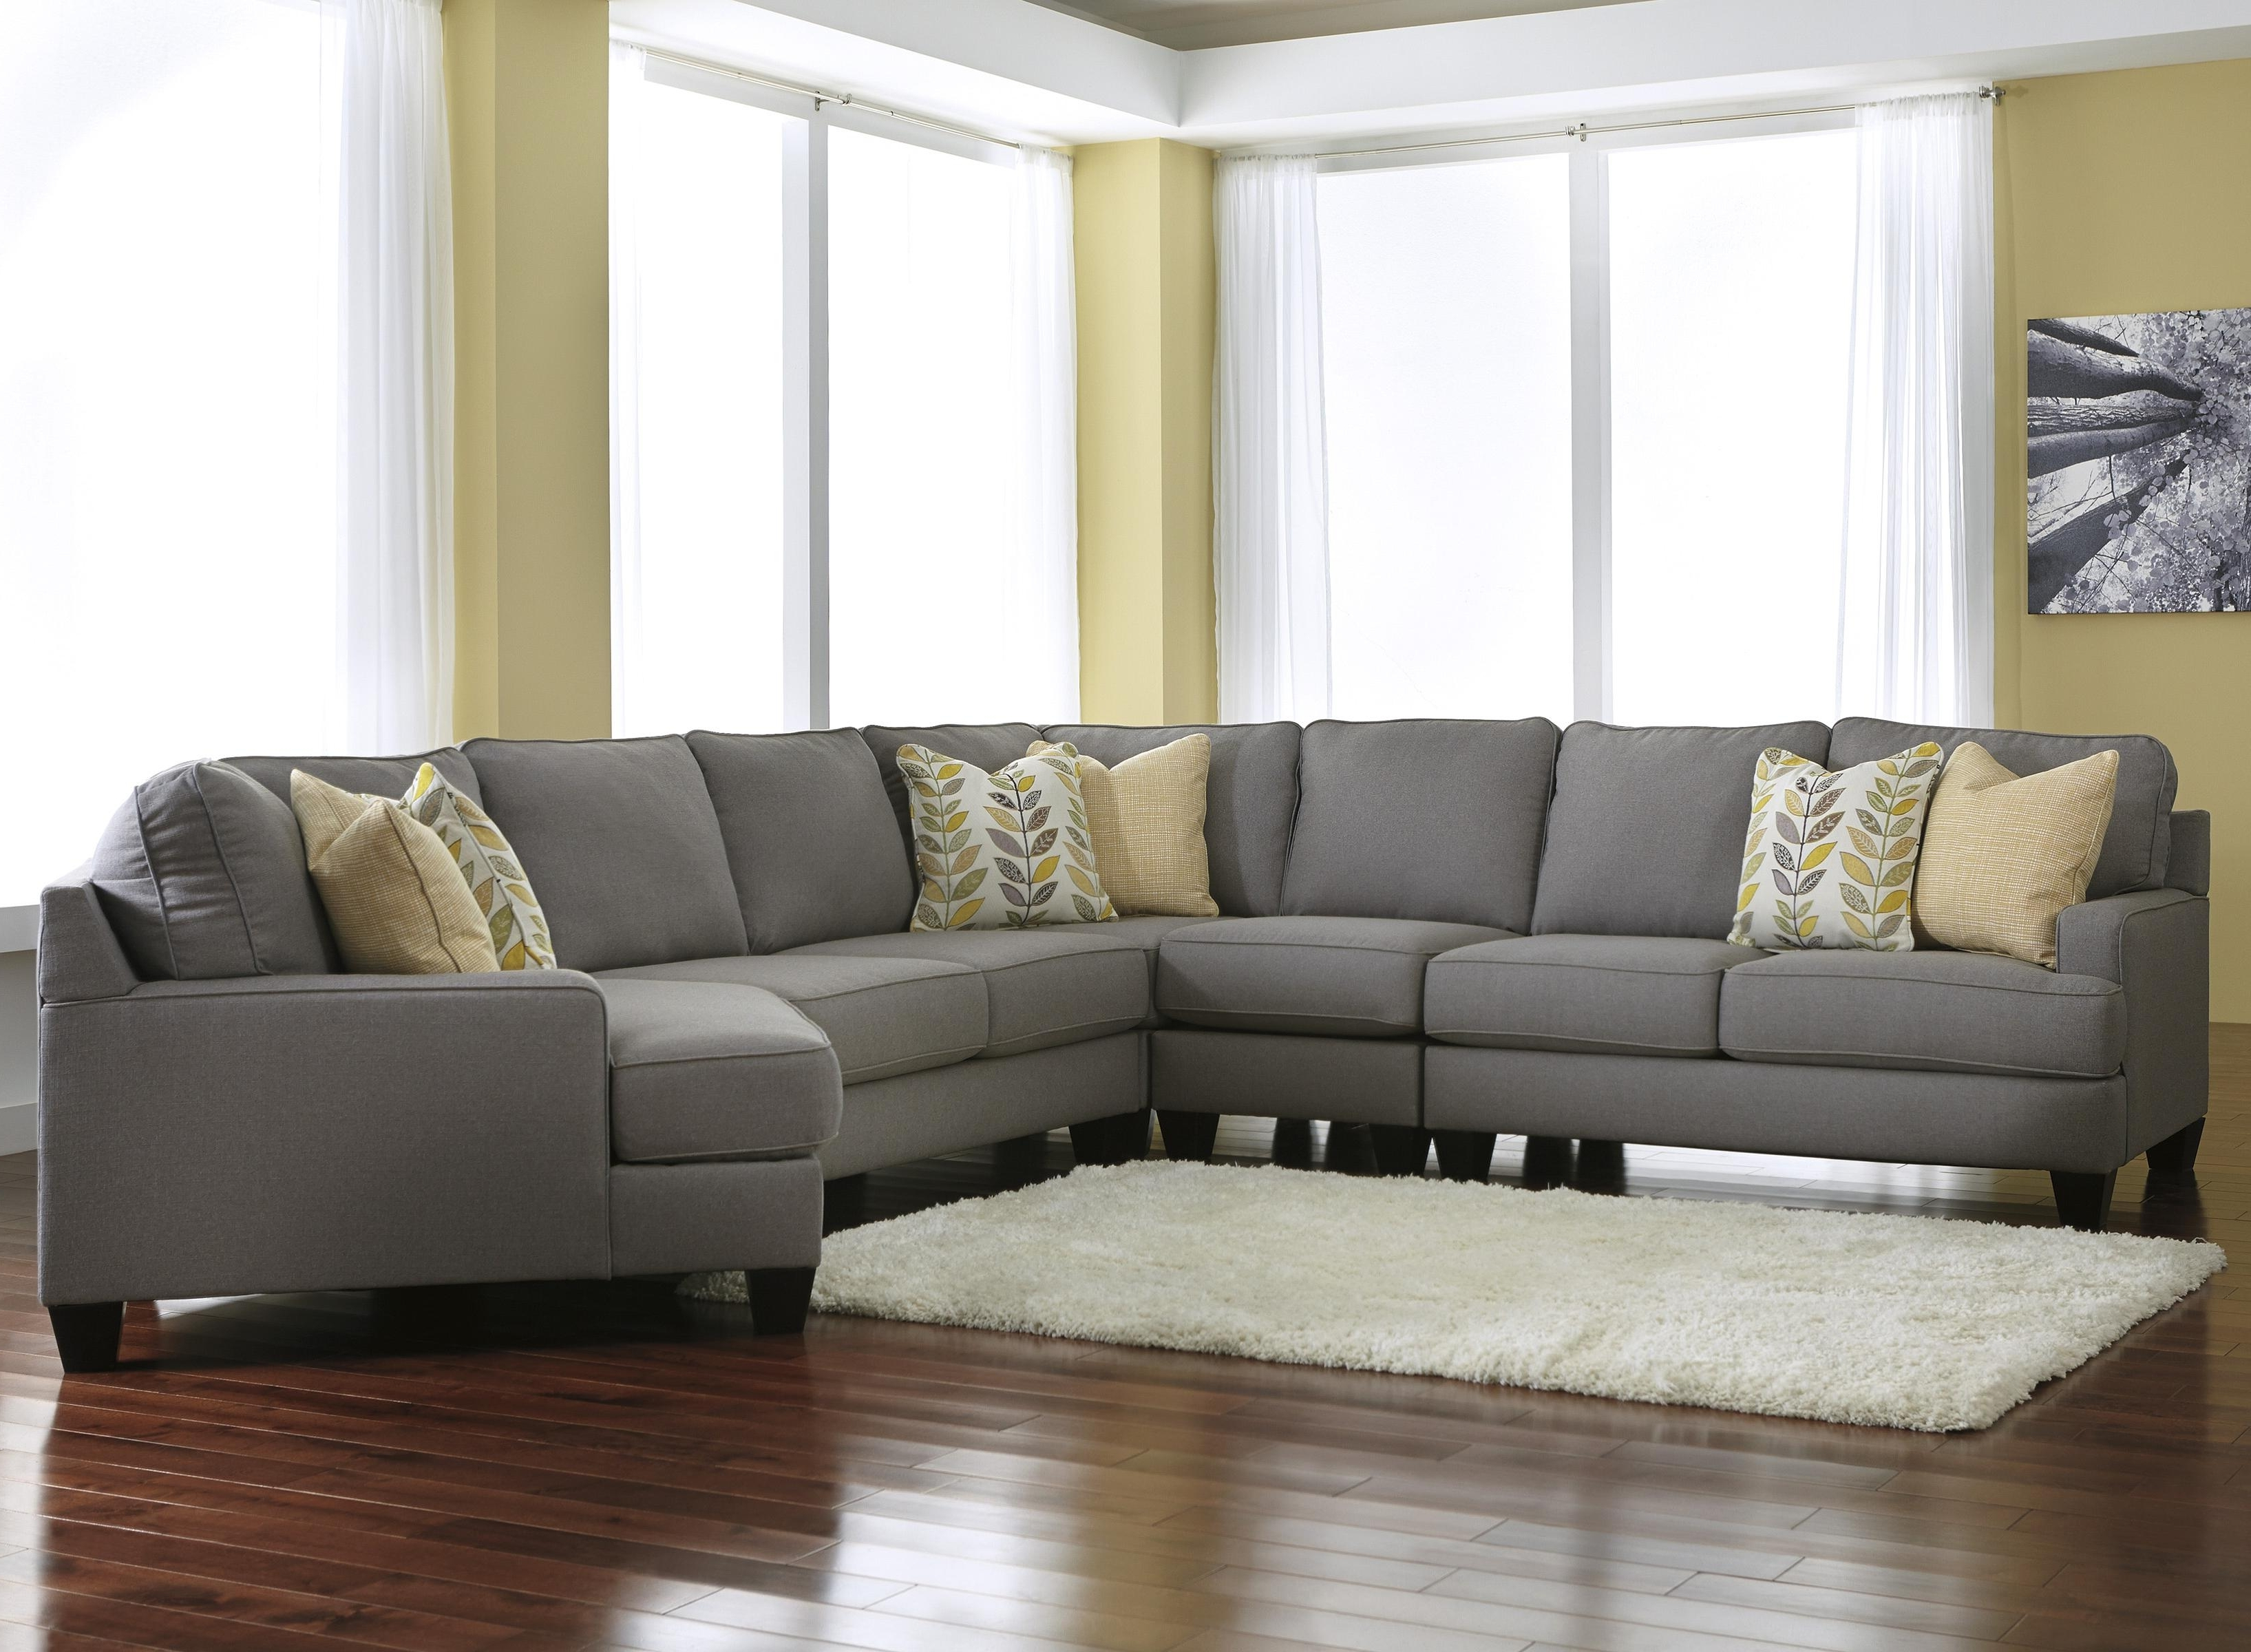 Sectional Sofas That Can Be Rearranged Intended For Famous Sofa : Logan Sectional Sofa Setashley Furniture Ashley (View 13 of 20)